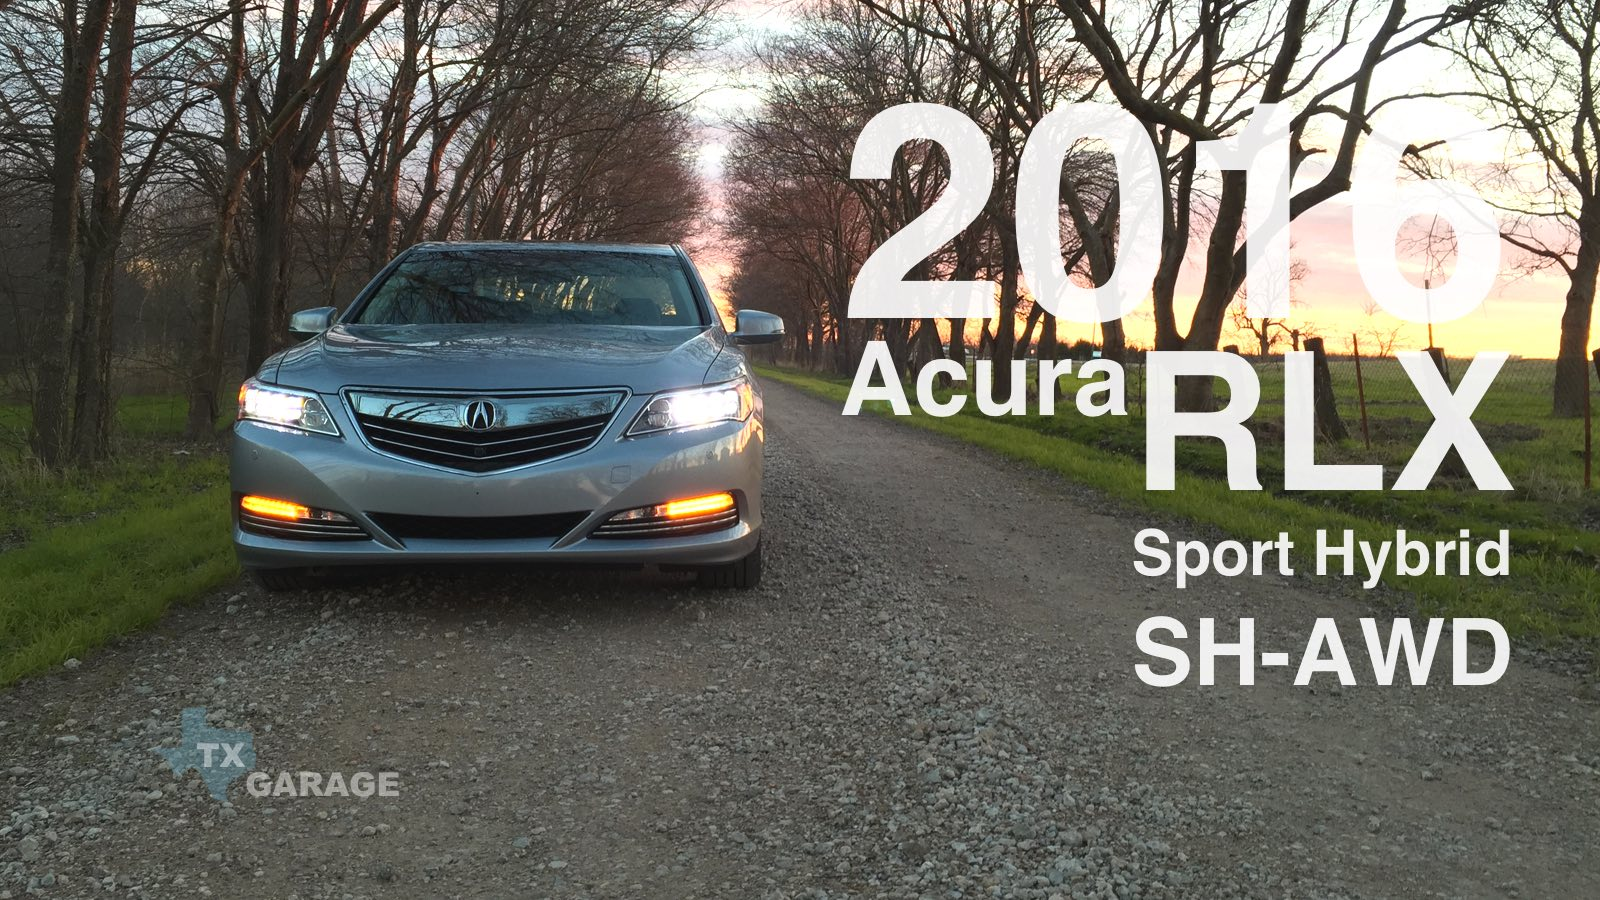 The 2016 Acura RLX Sport Hybrid SH-AWD